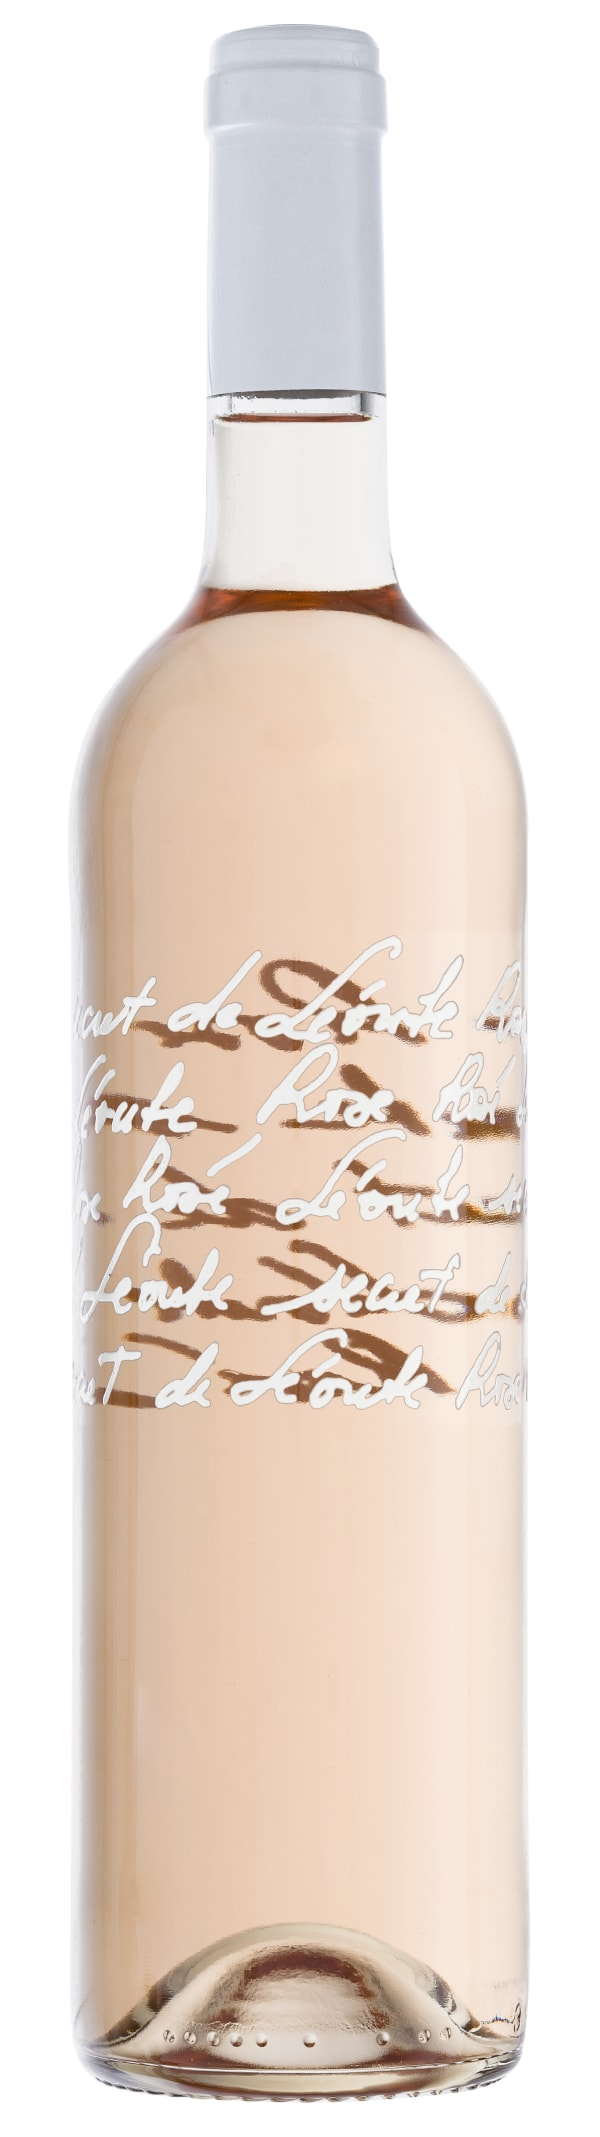 Leoube Secret Rosé 2016